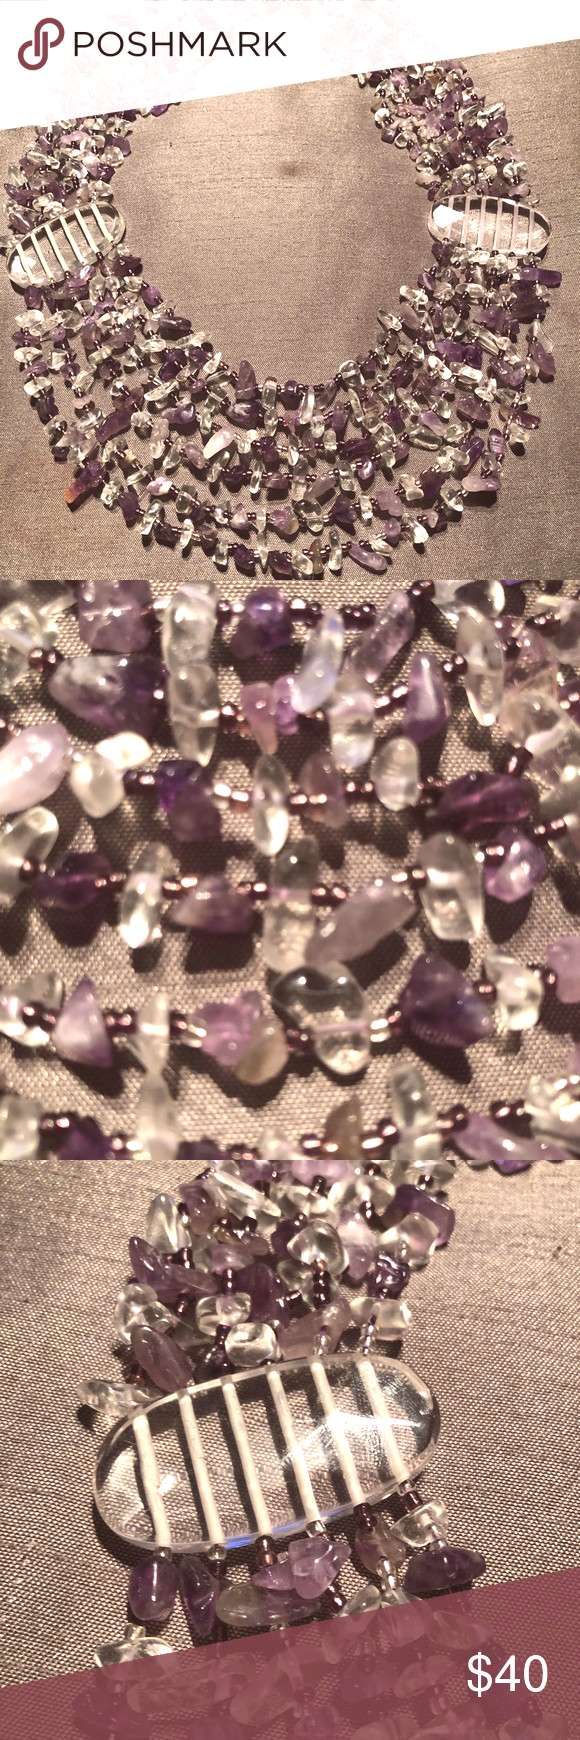 Genuine Amethyst Crystal Stone necklace Hundreds of Amethyst and Crystal stones beautifully drape y